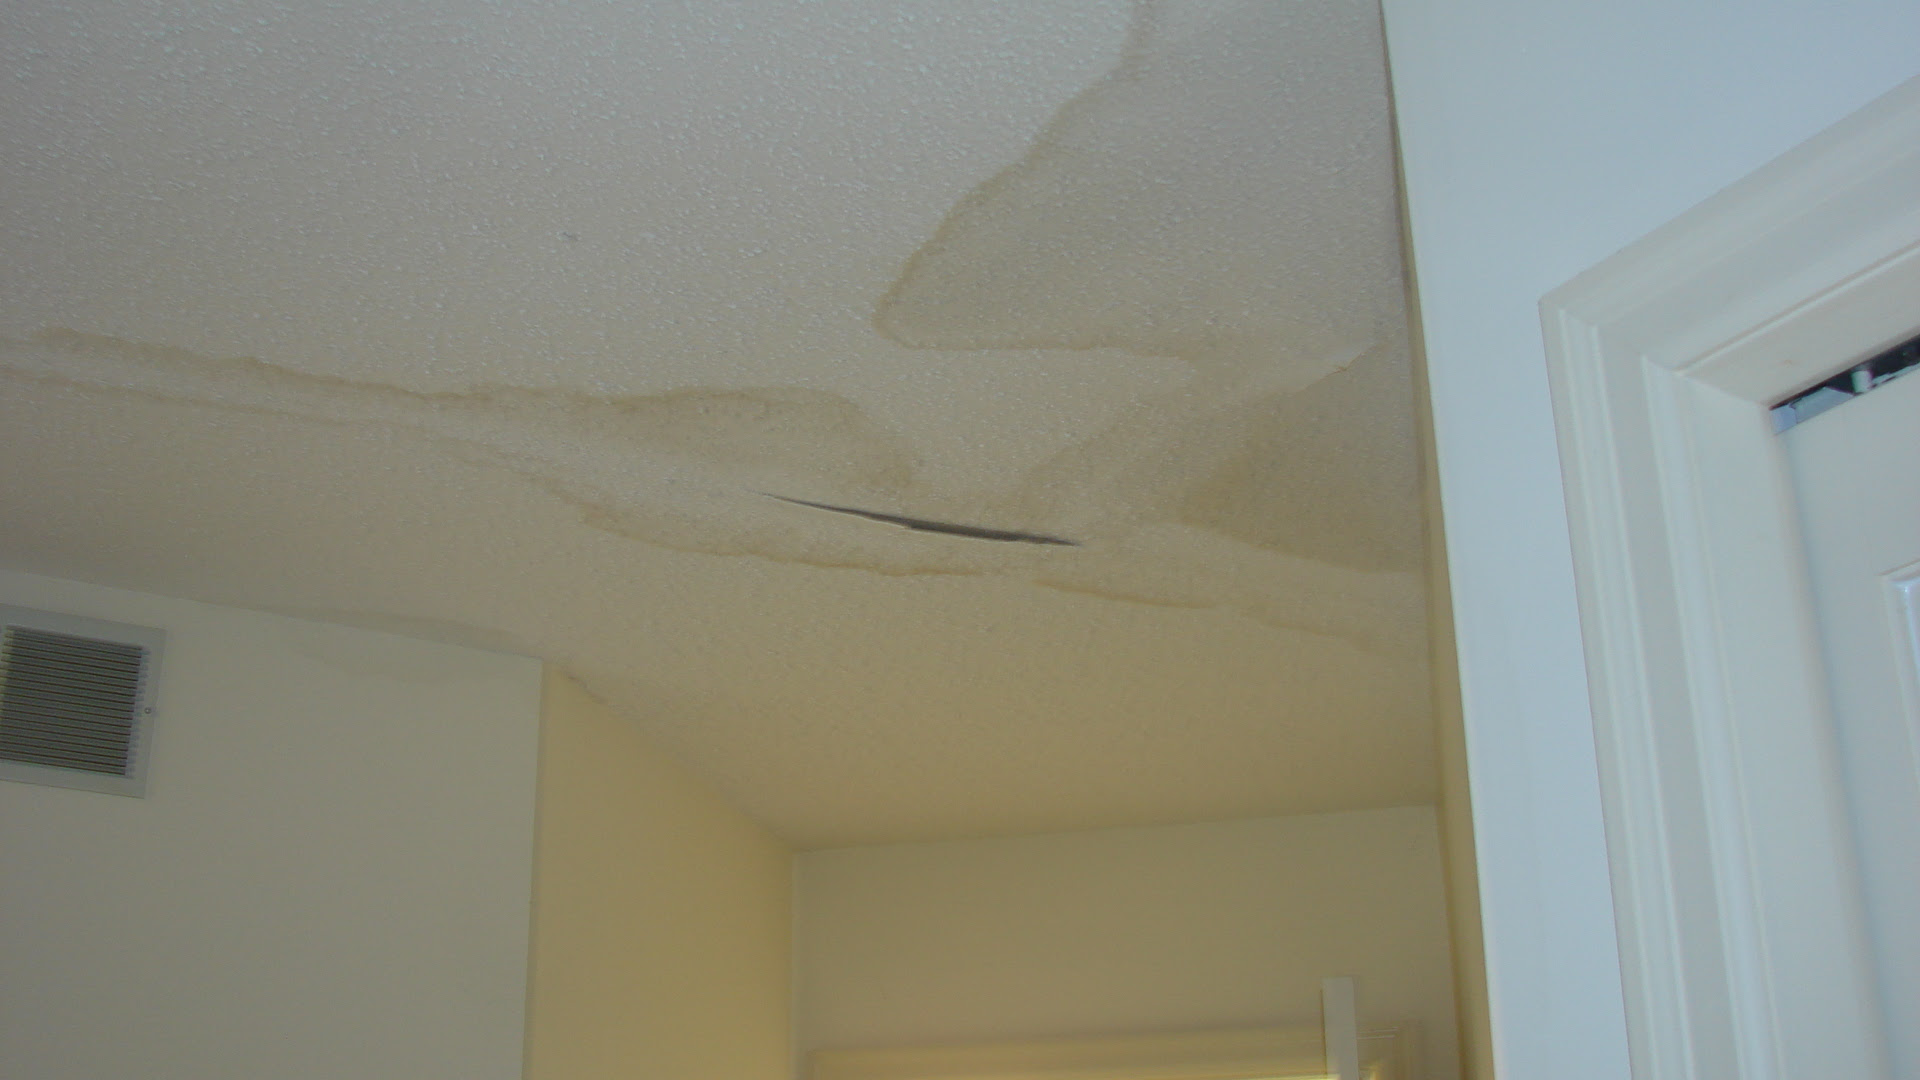 Water Damage To Ceiling Drywall